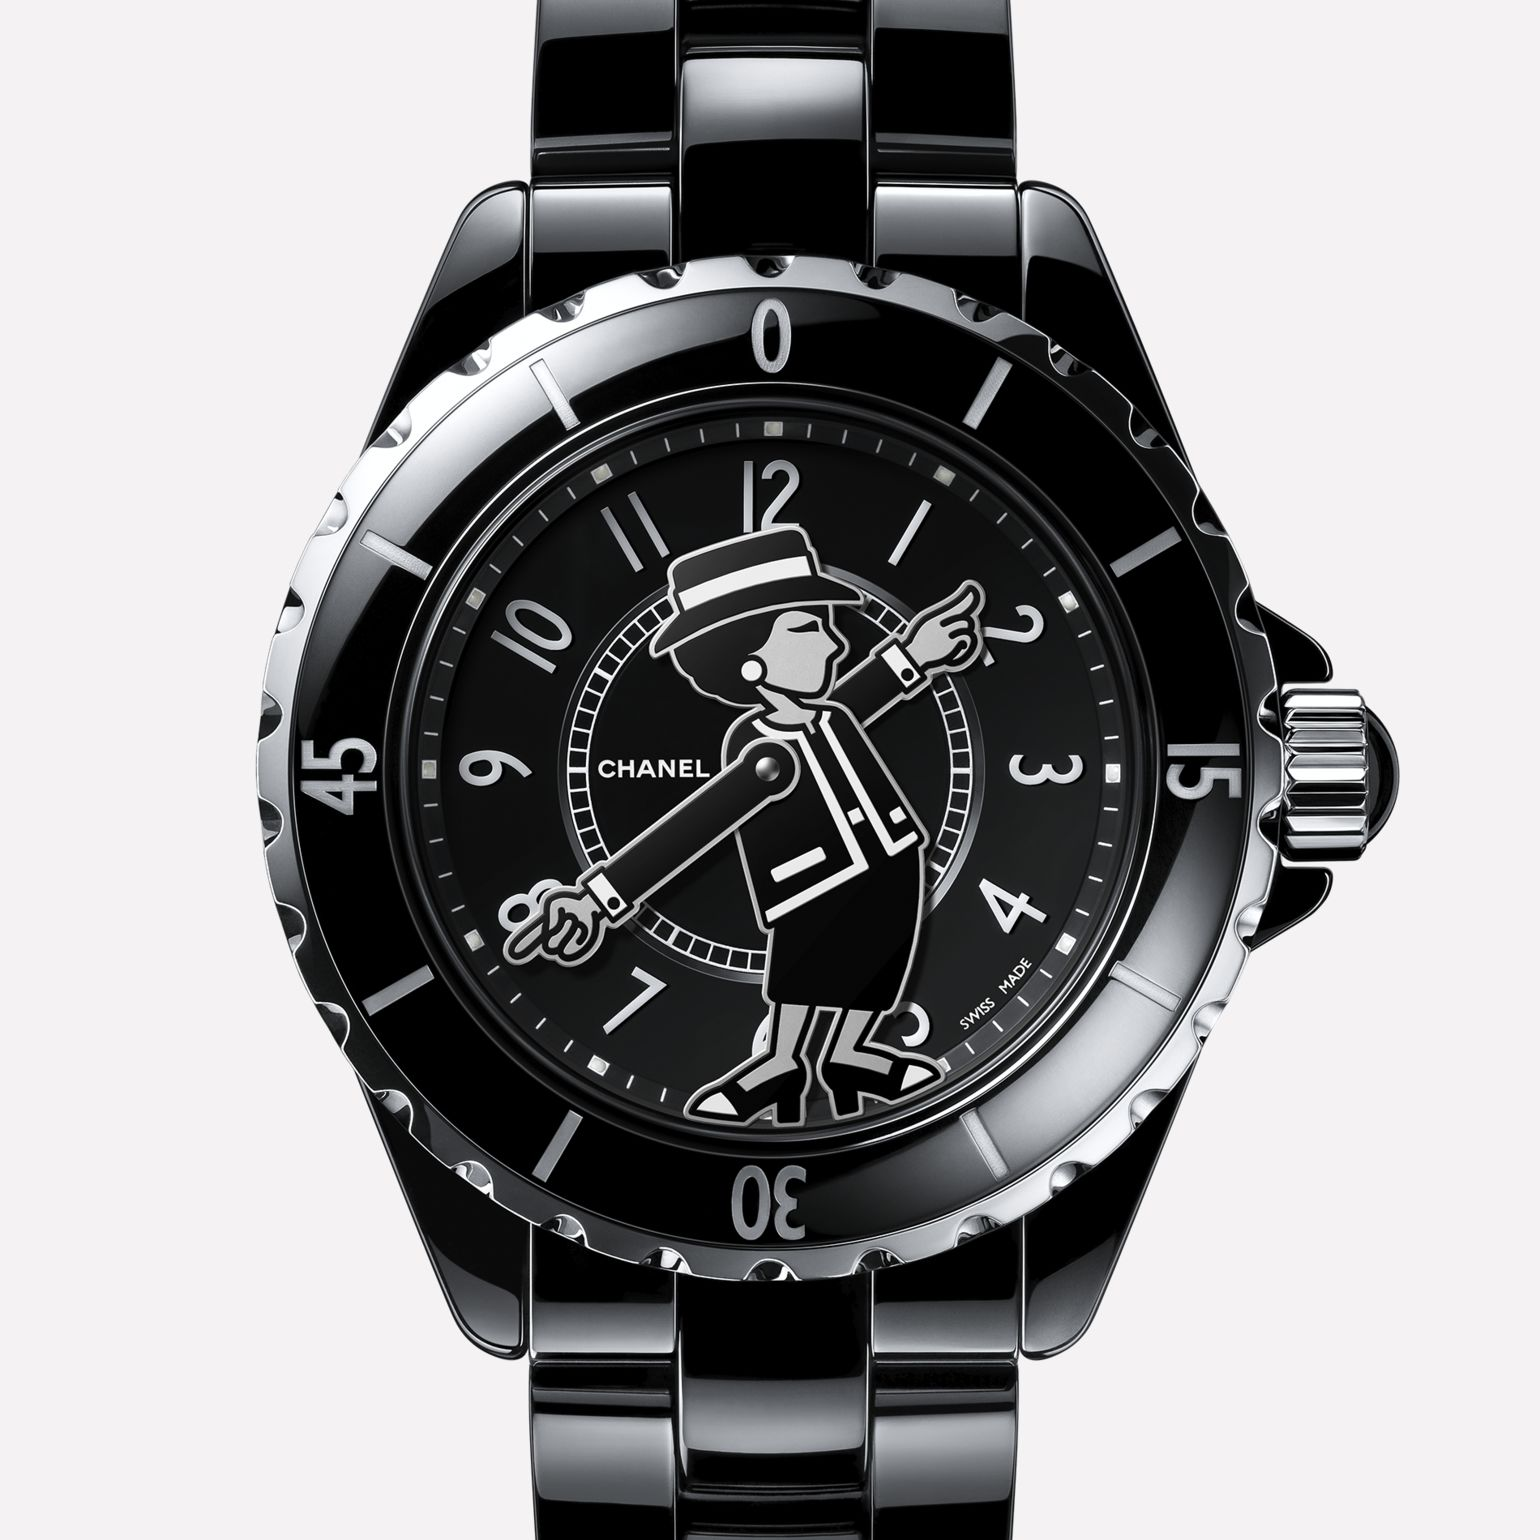 MADEMOISELLE J12 Watch Black ceramic and steel, silhouette of Mademoiselle Chanel